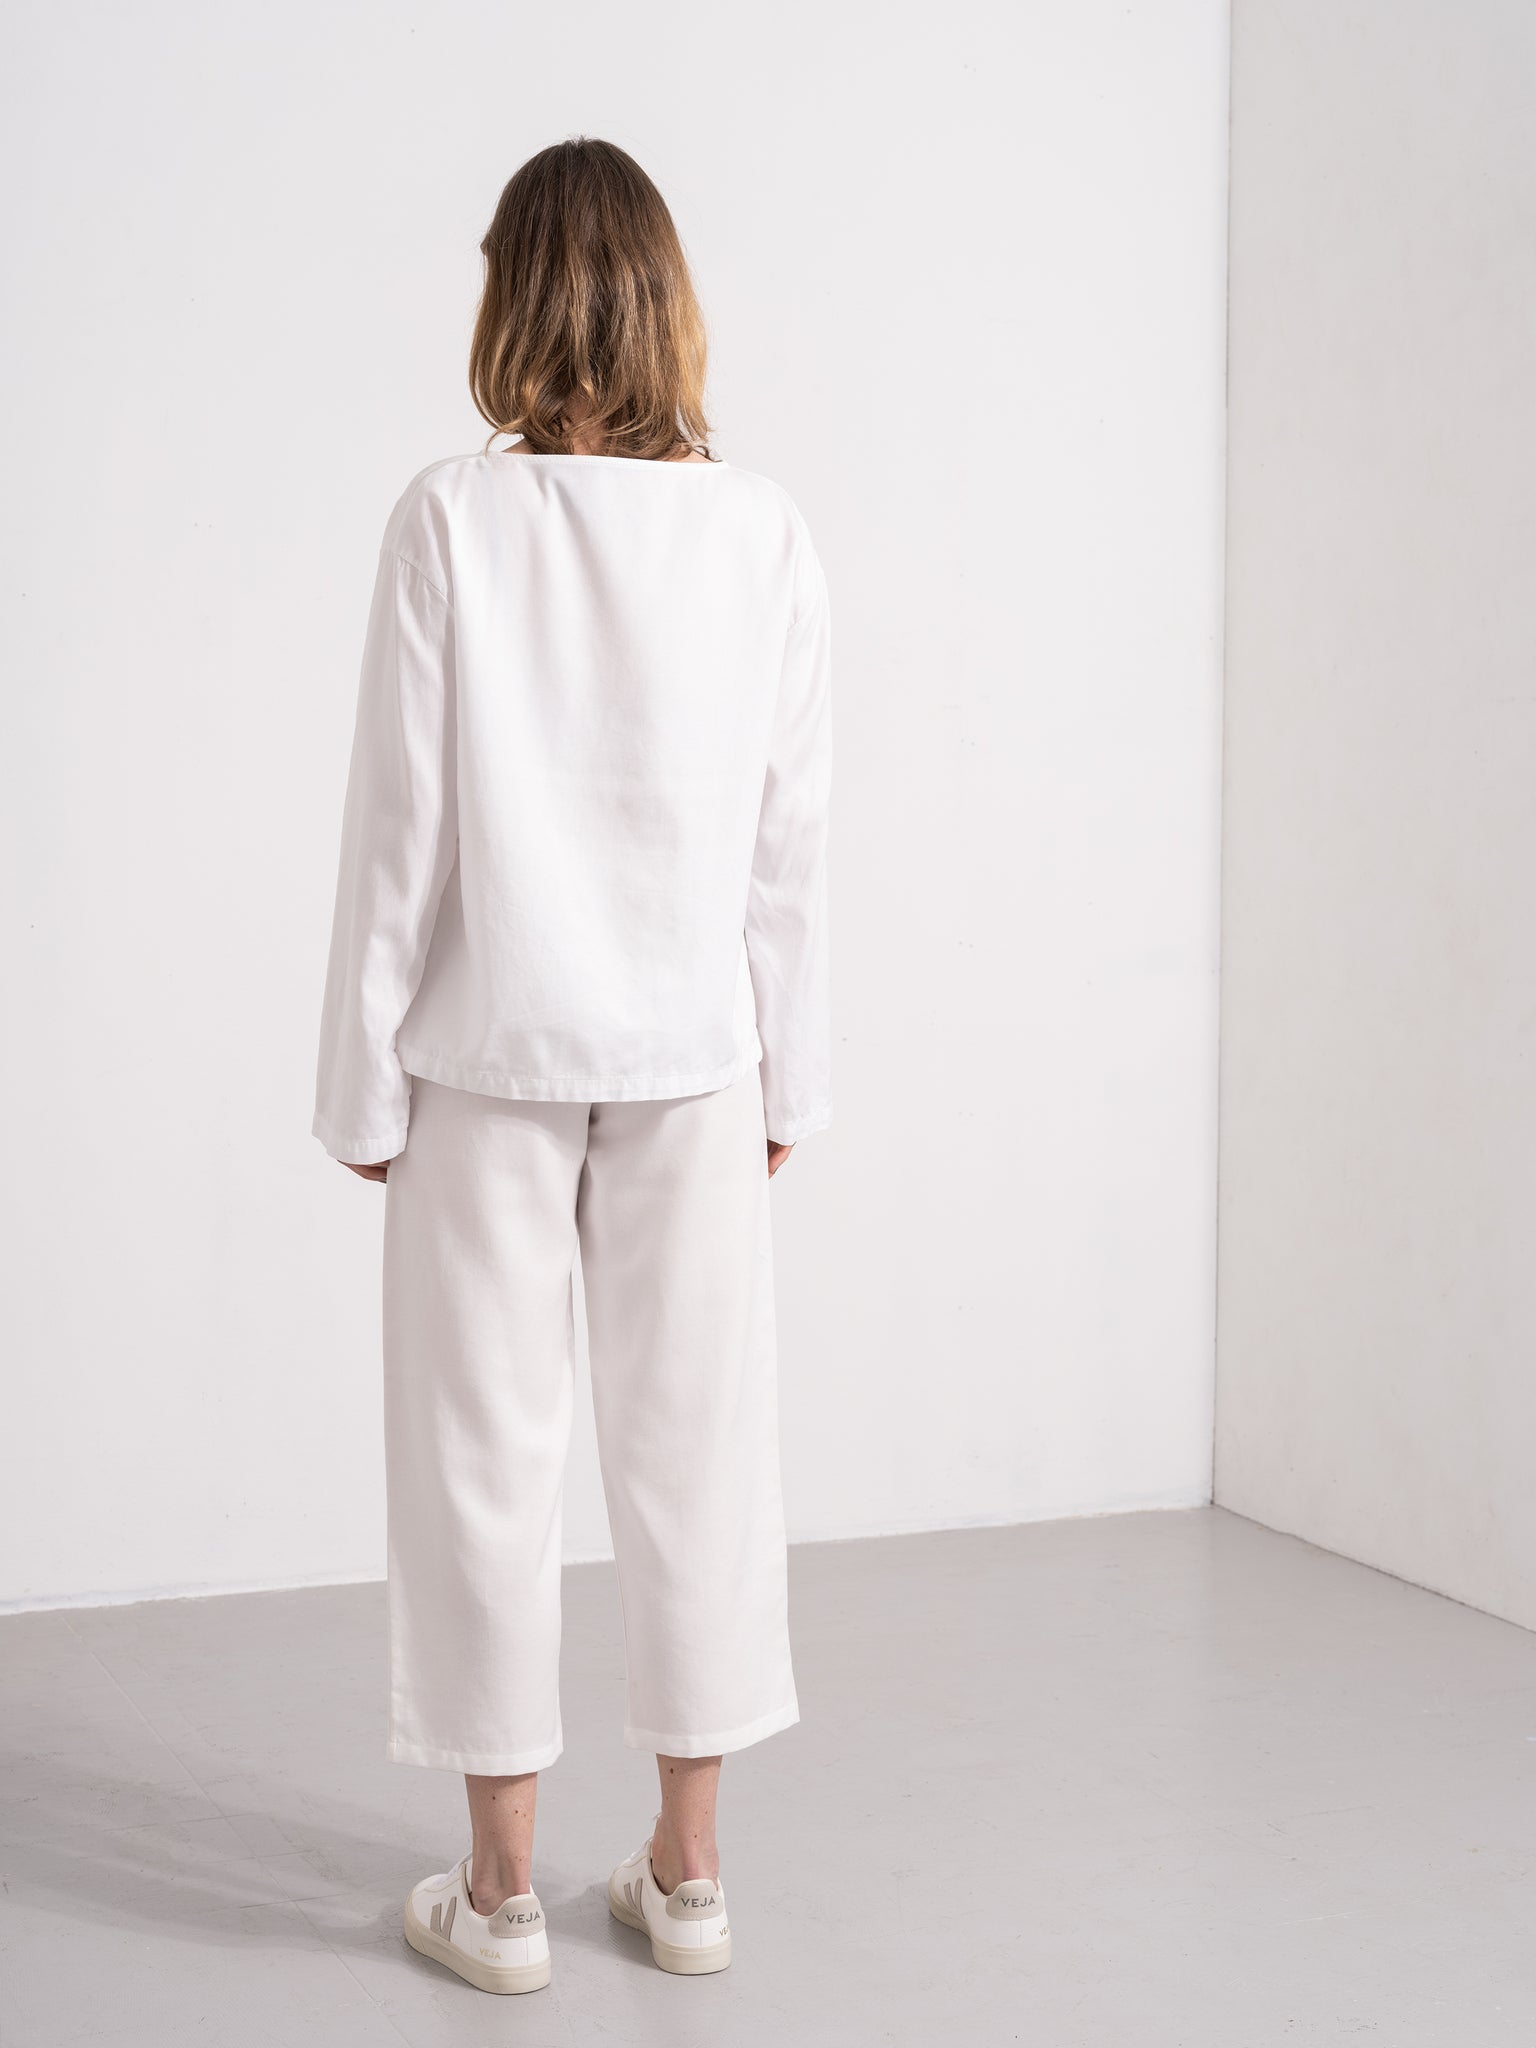 Kläder som är hållbart producerade. Hållbart mode. Amalia top is long sleeved, oversized and a sustainable garment. The fabric feels soft and light to the skin. Sustainability and value driven brand from Stockholm Sweden.